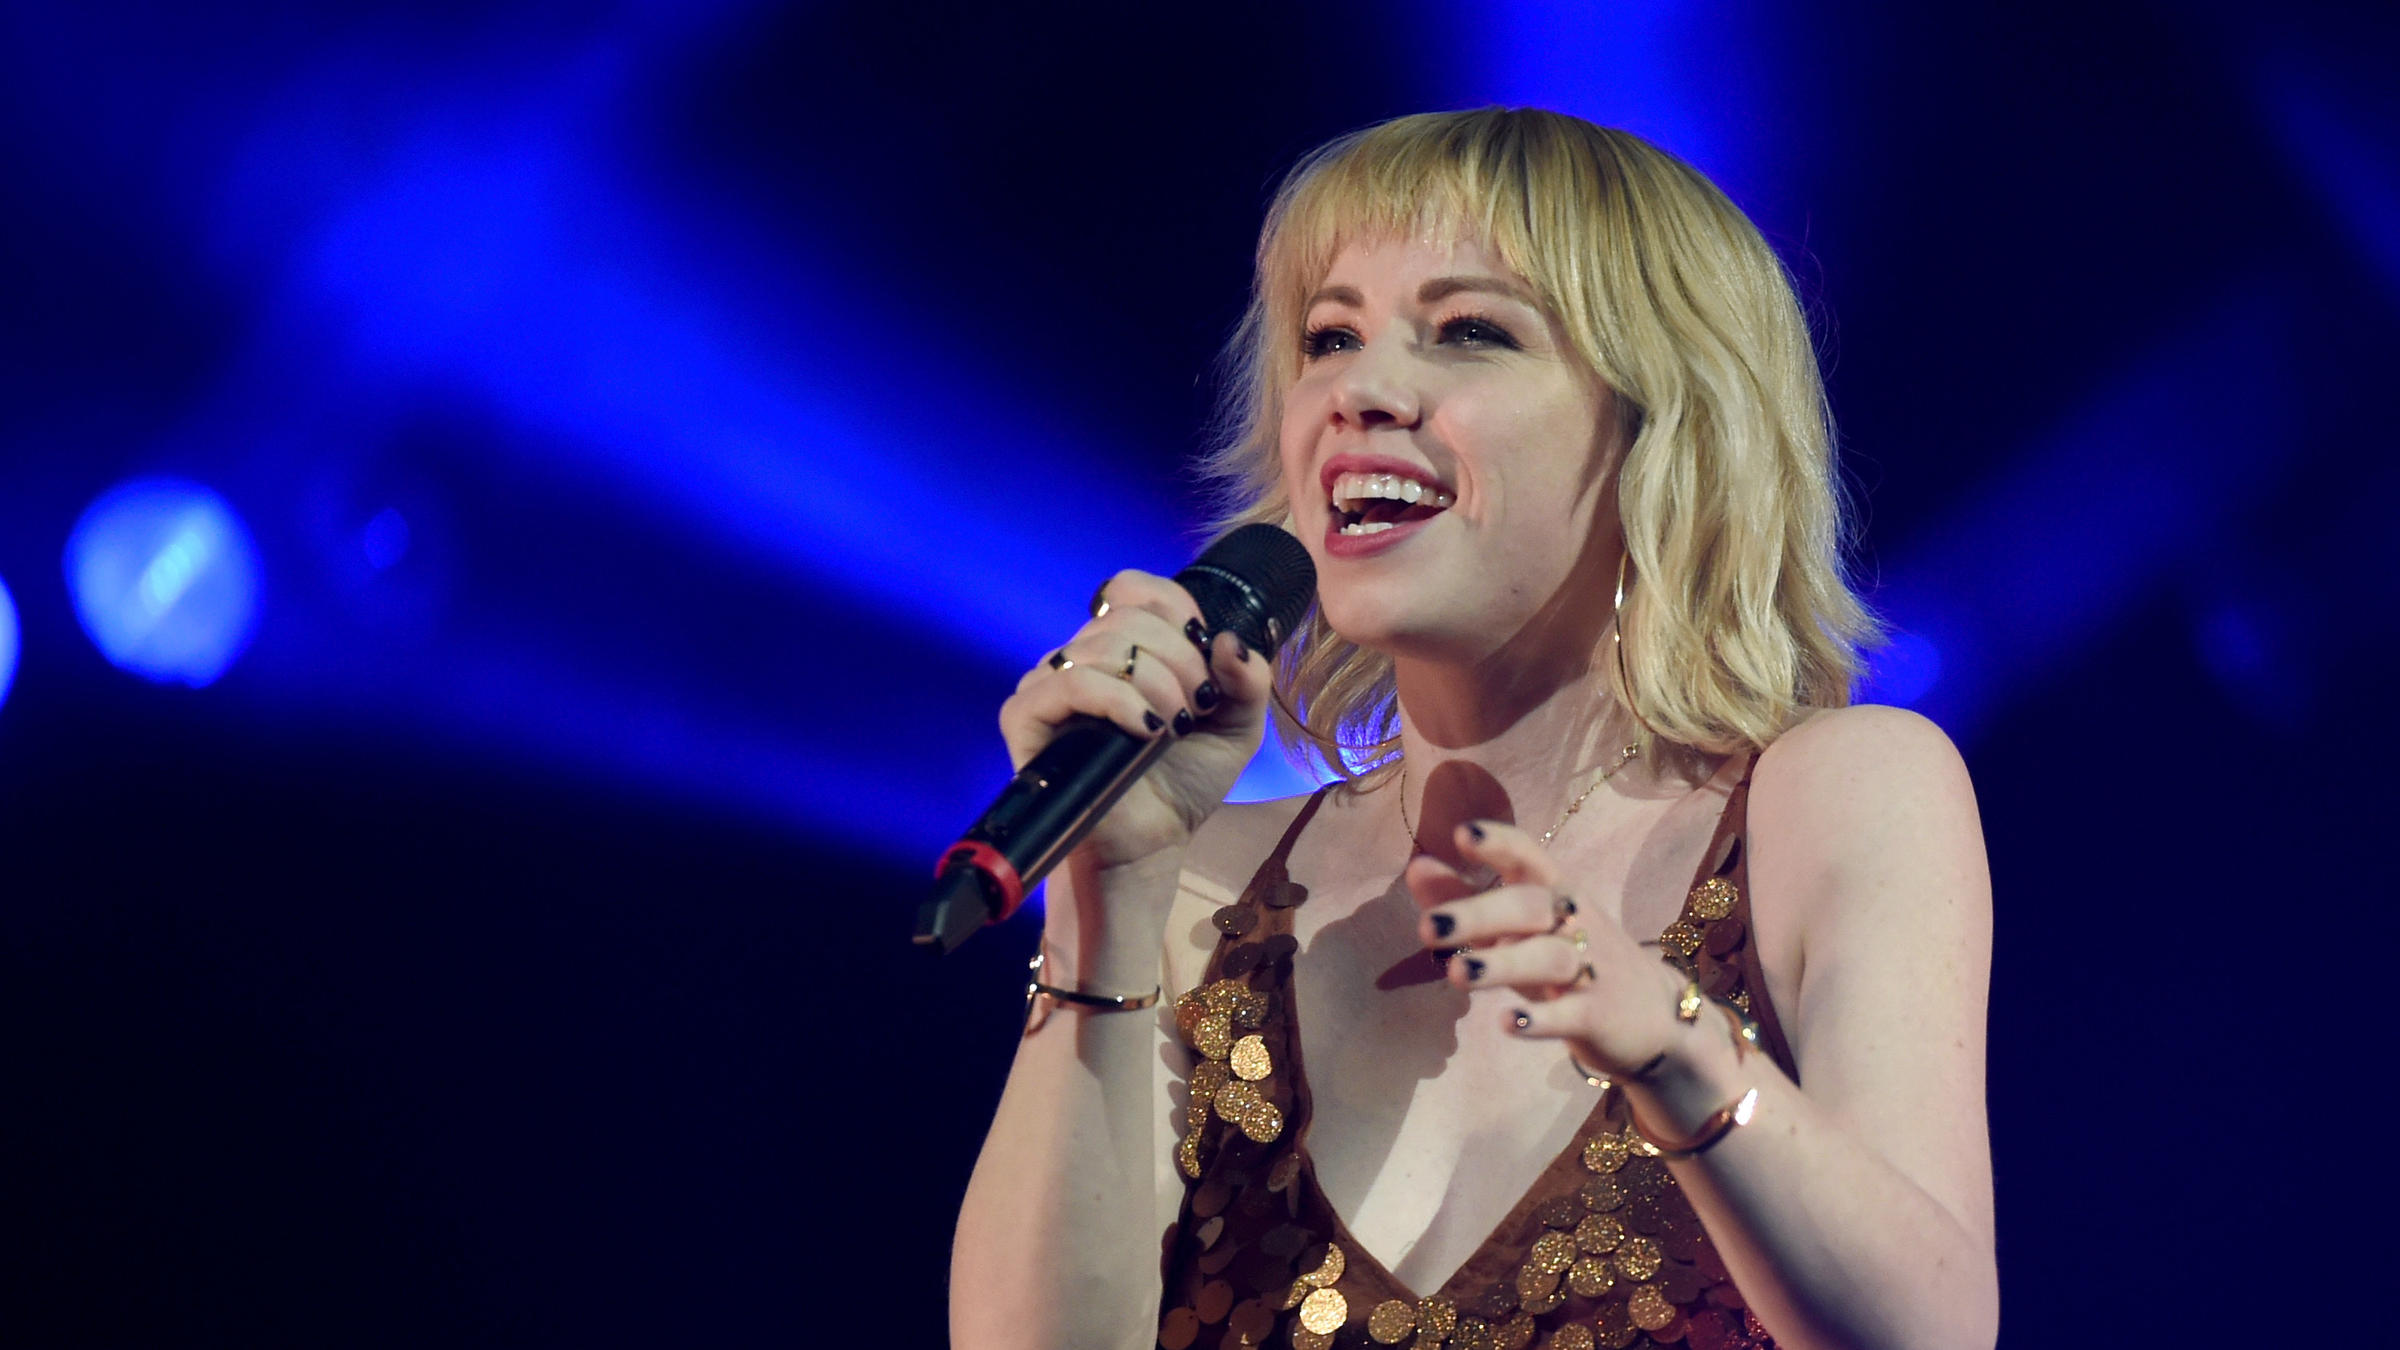 Carly Rae Jepsen Nude Photos 26